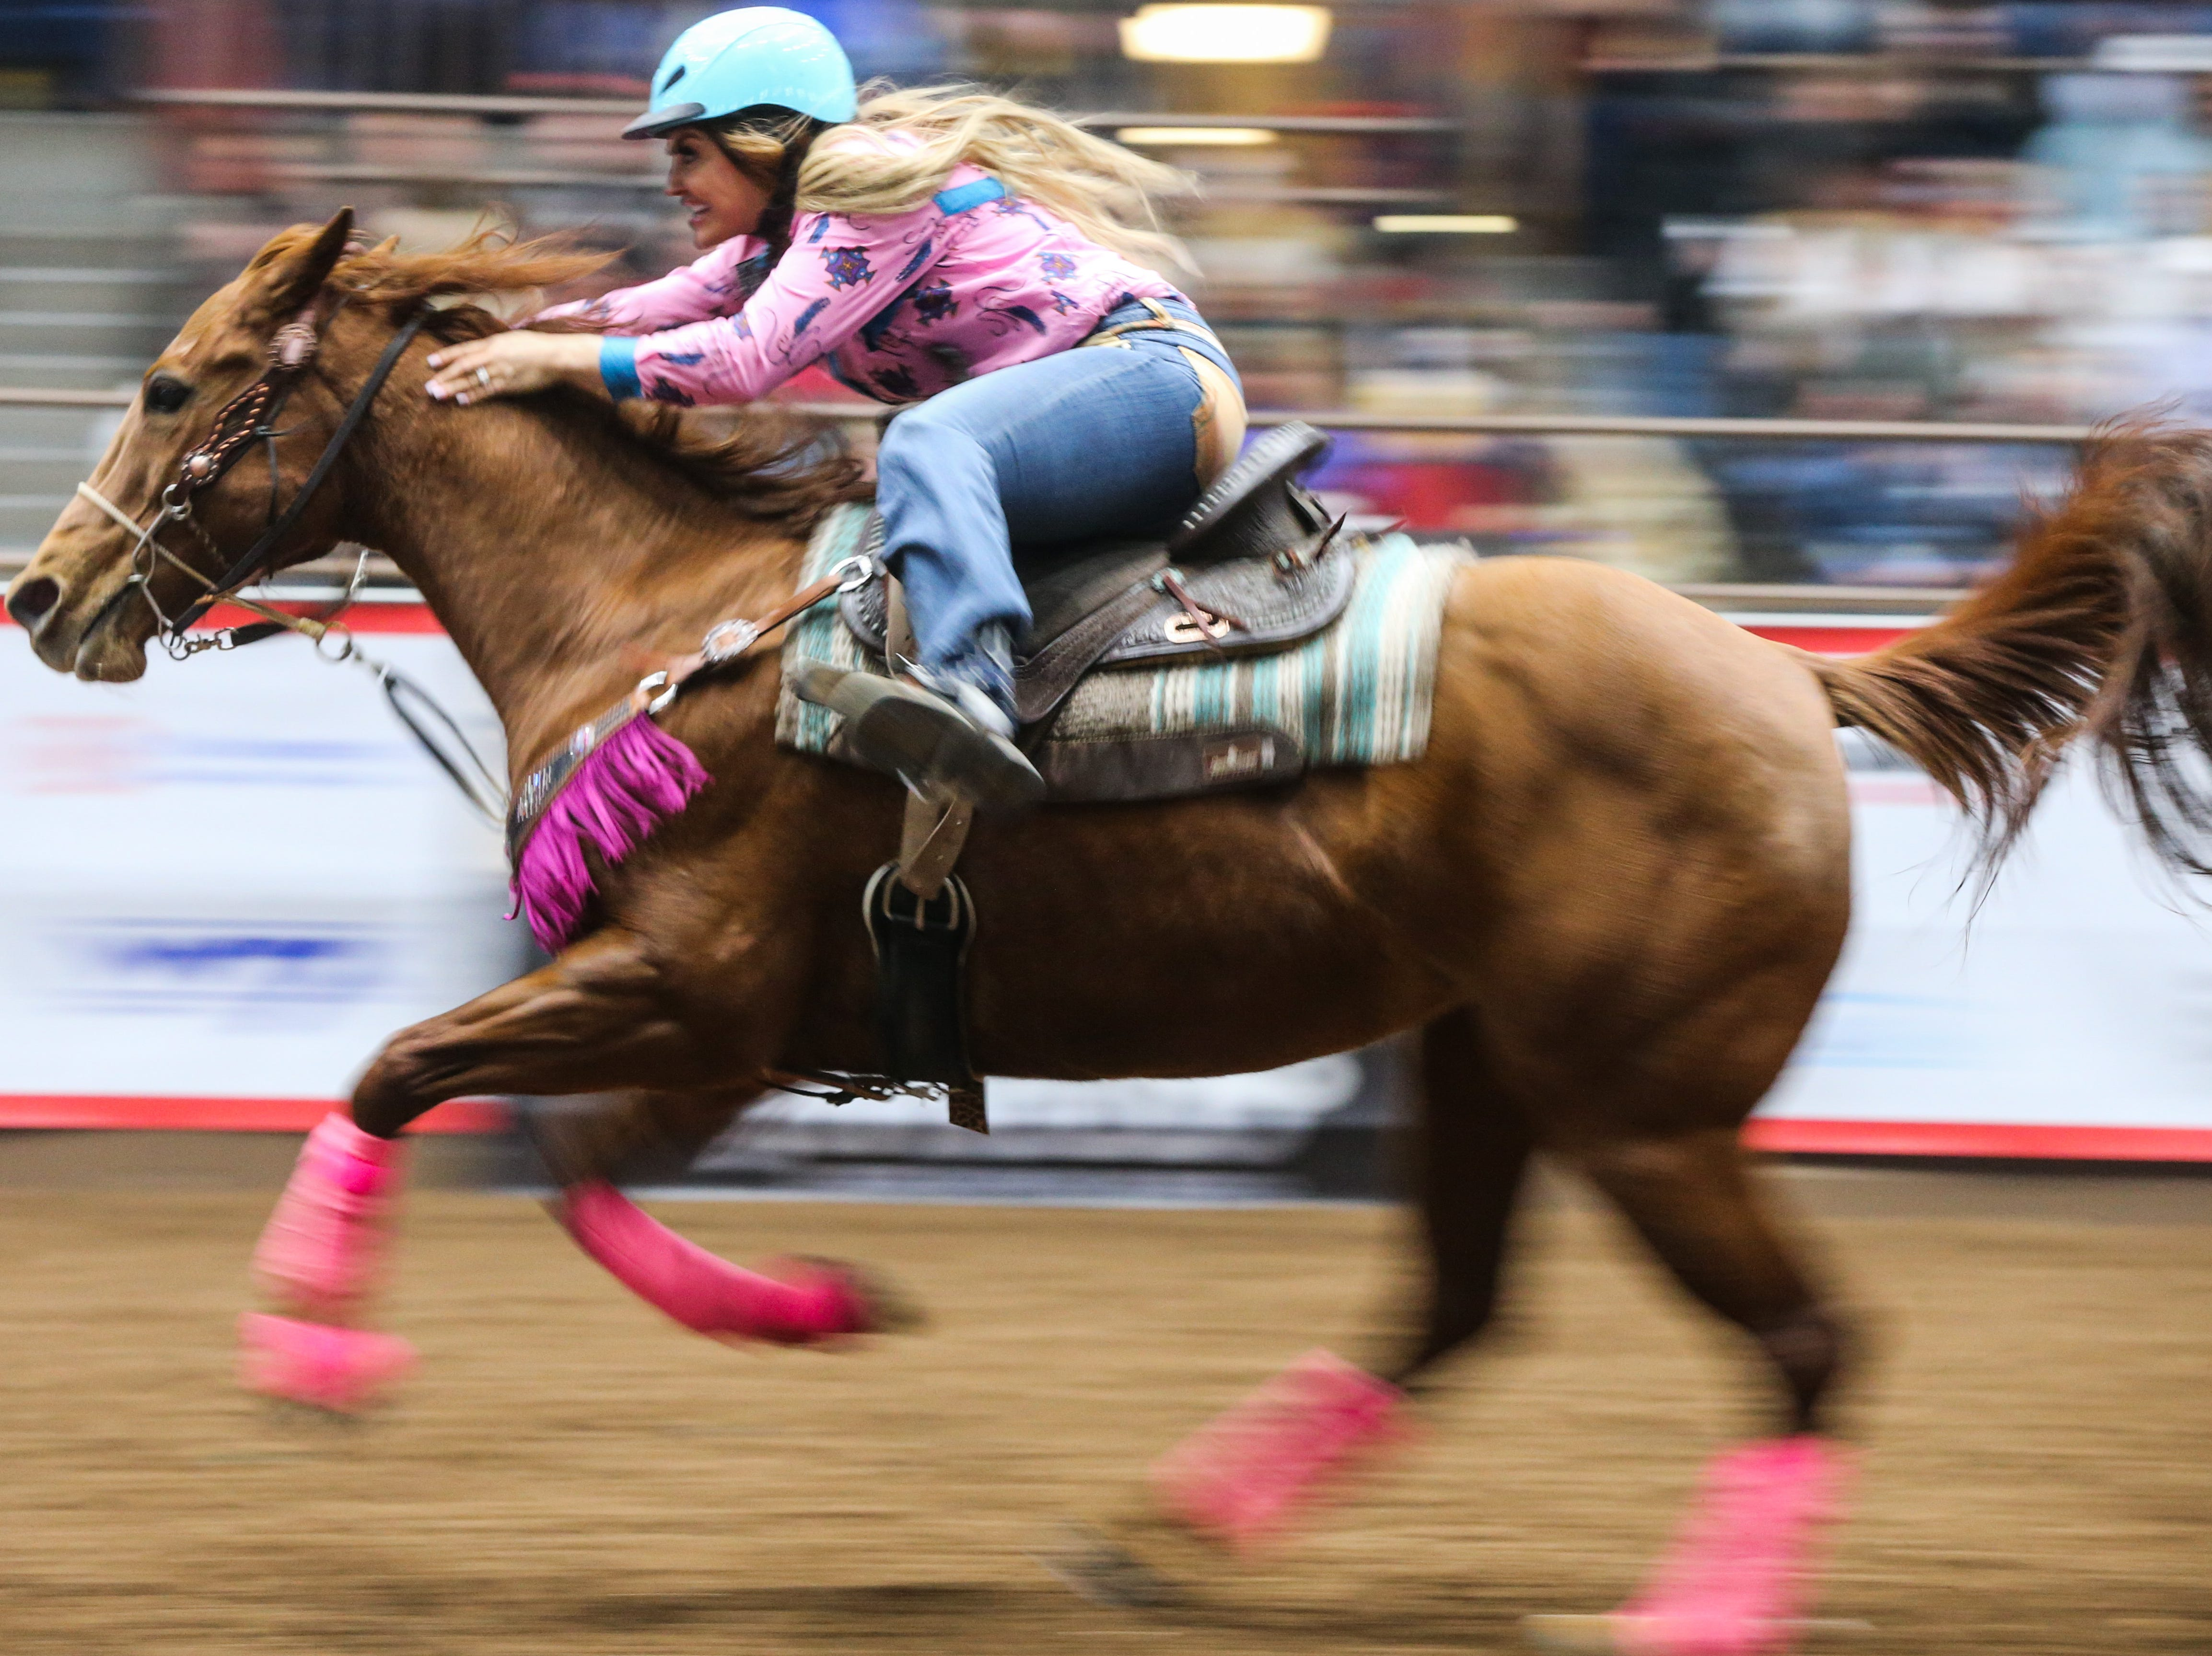 Fallon Taylor races the barrels during the 5th performance of the San Angelo Stock Show & Rodeo Friday, Feb. 8, 2019, at Foster Communications Coliseum.